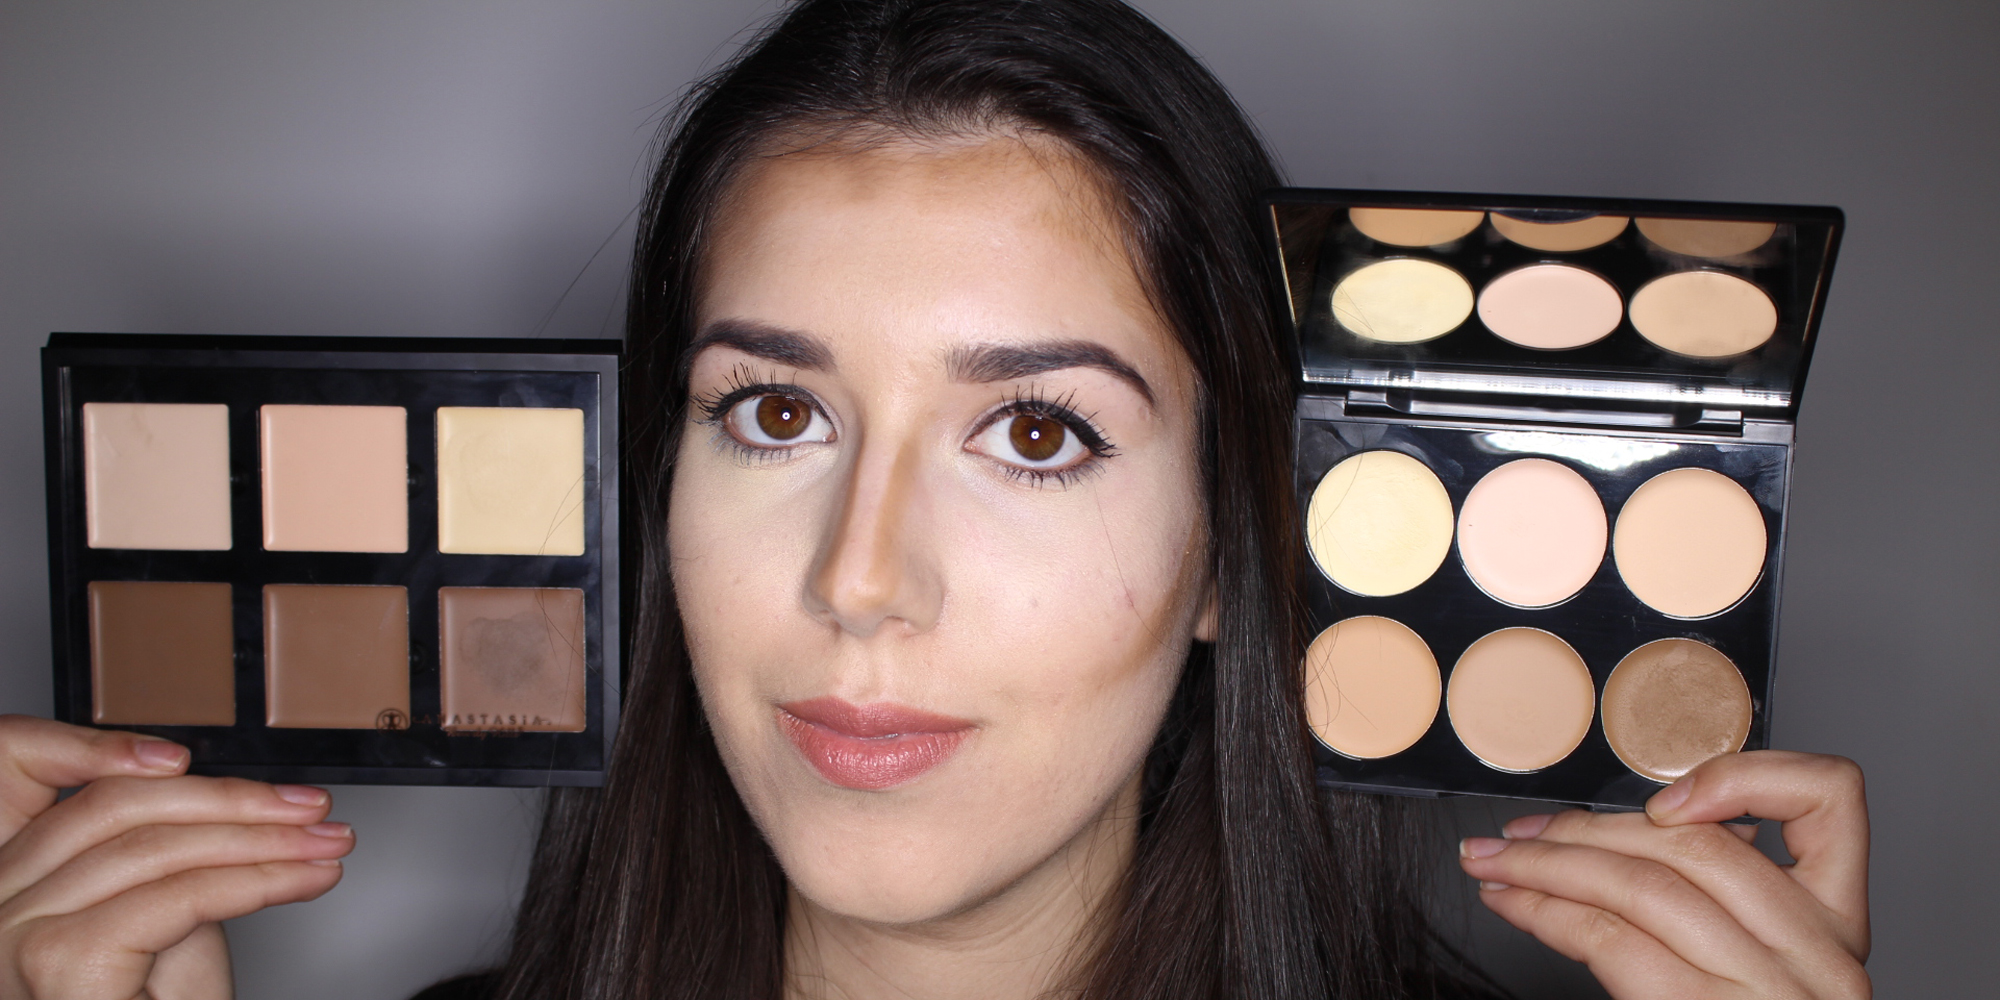 makeup contour set - Style Guru: Fashion, Glitz, Glamour ...